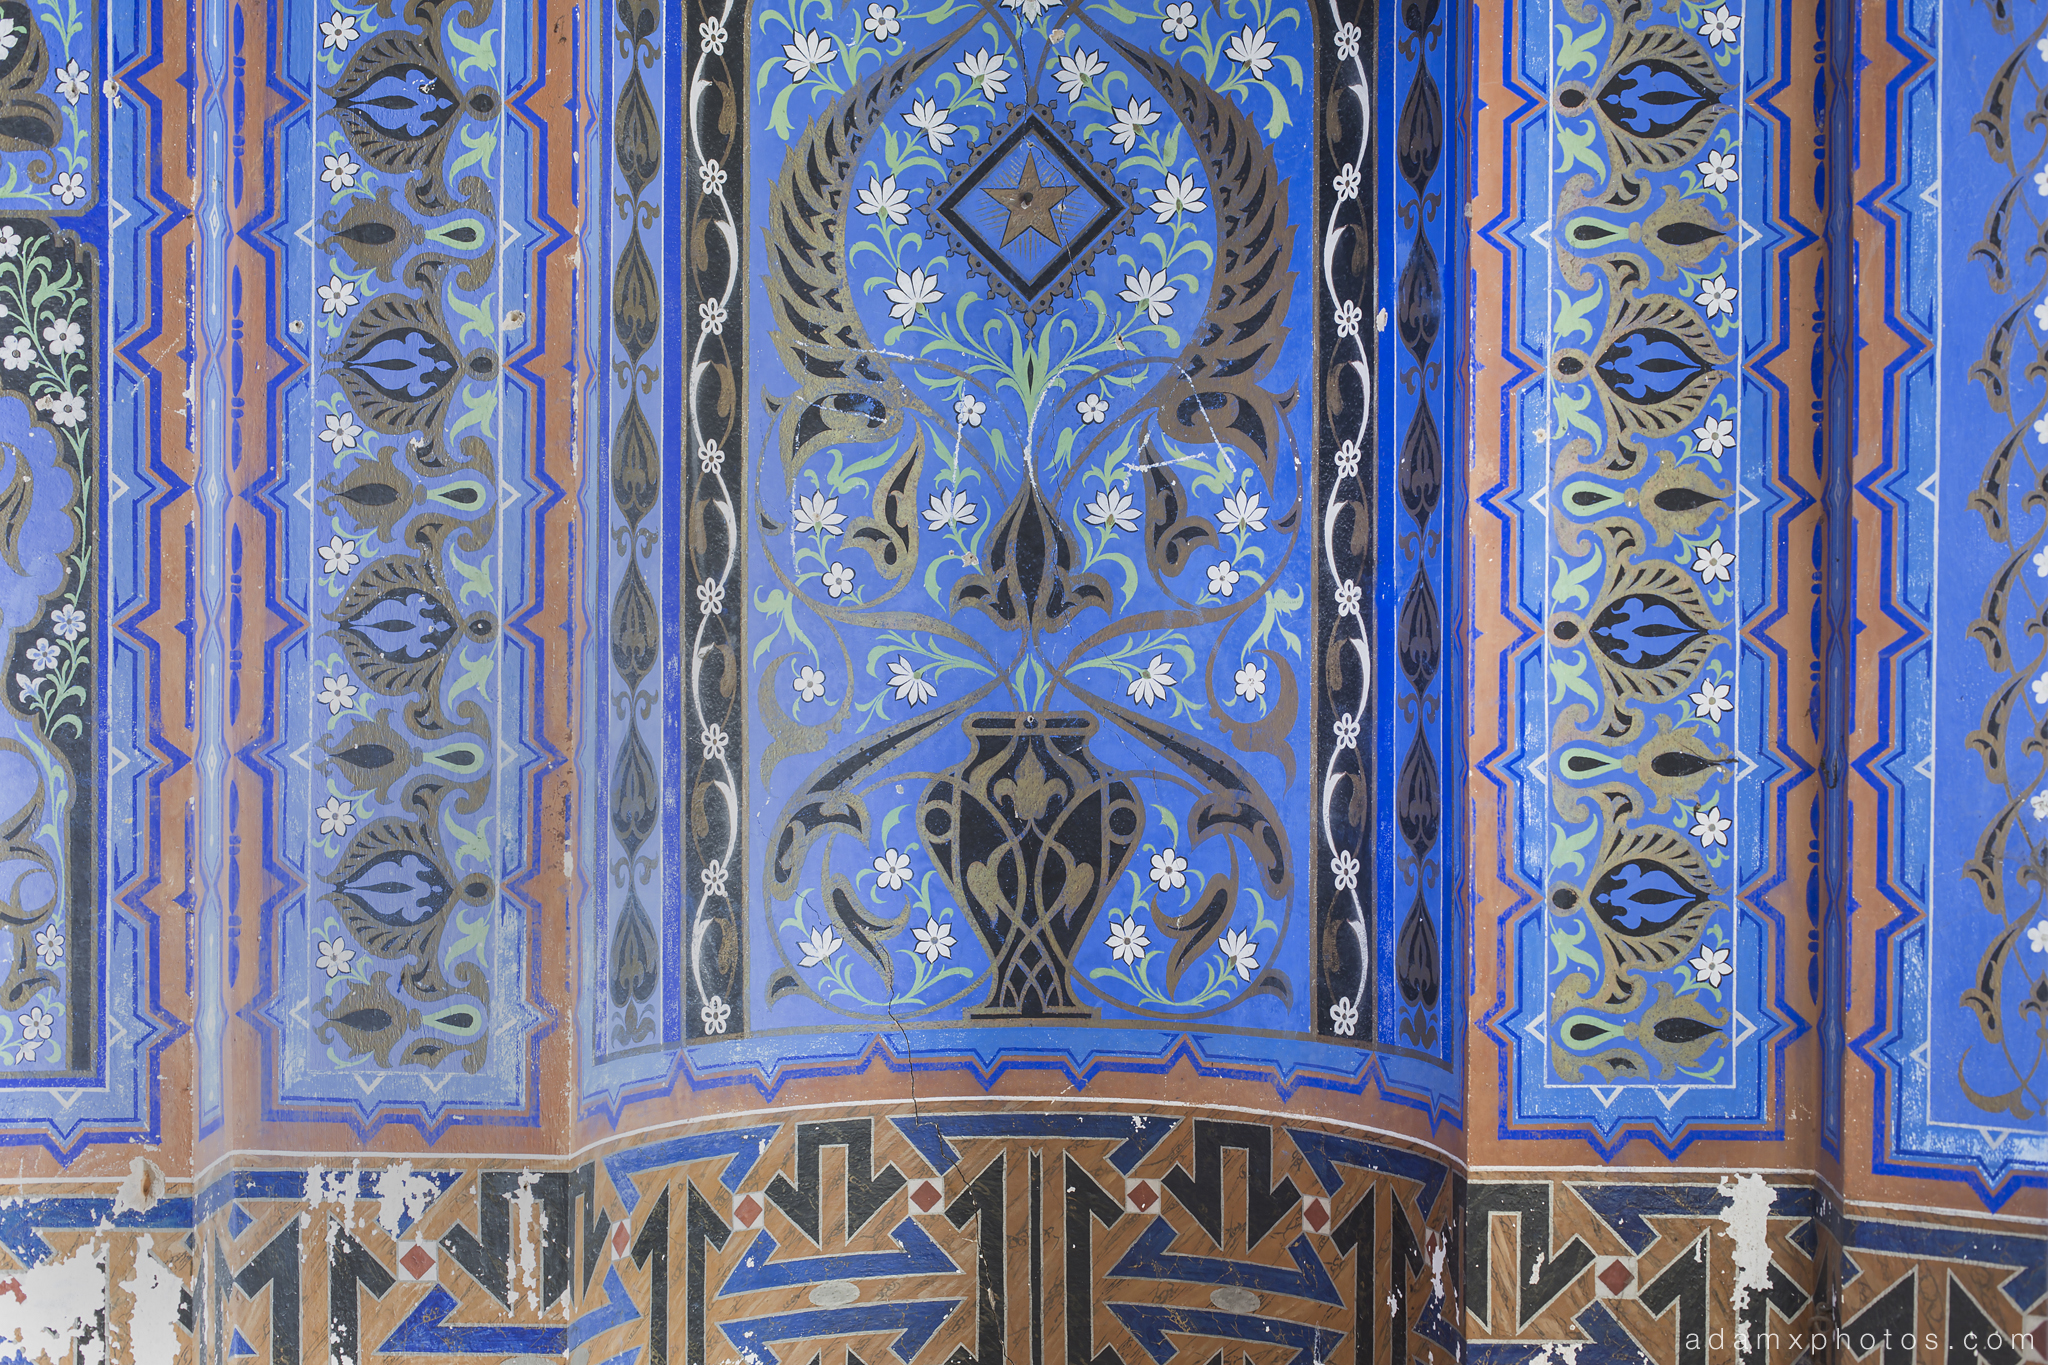 Blue detail The Lovers Room Non Plus Ultra Fairytale Castle of Sammezzano Castello di Sammezzano Urbex Adam X Urban Exploration photo photos report decay detail UE abandoned Ornate Moorish tiling tiled derelict unused empty disused decay decayed decaying grimy grime